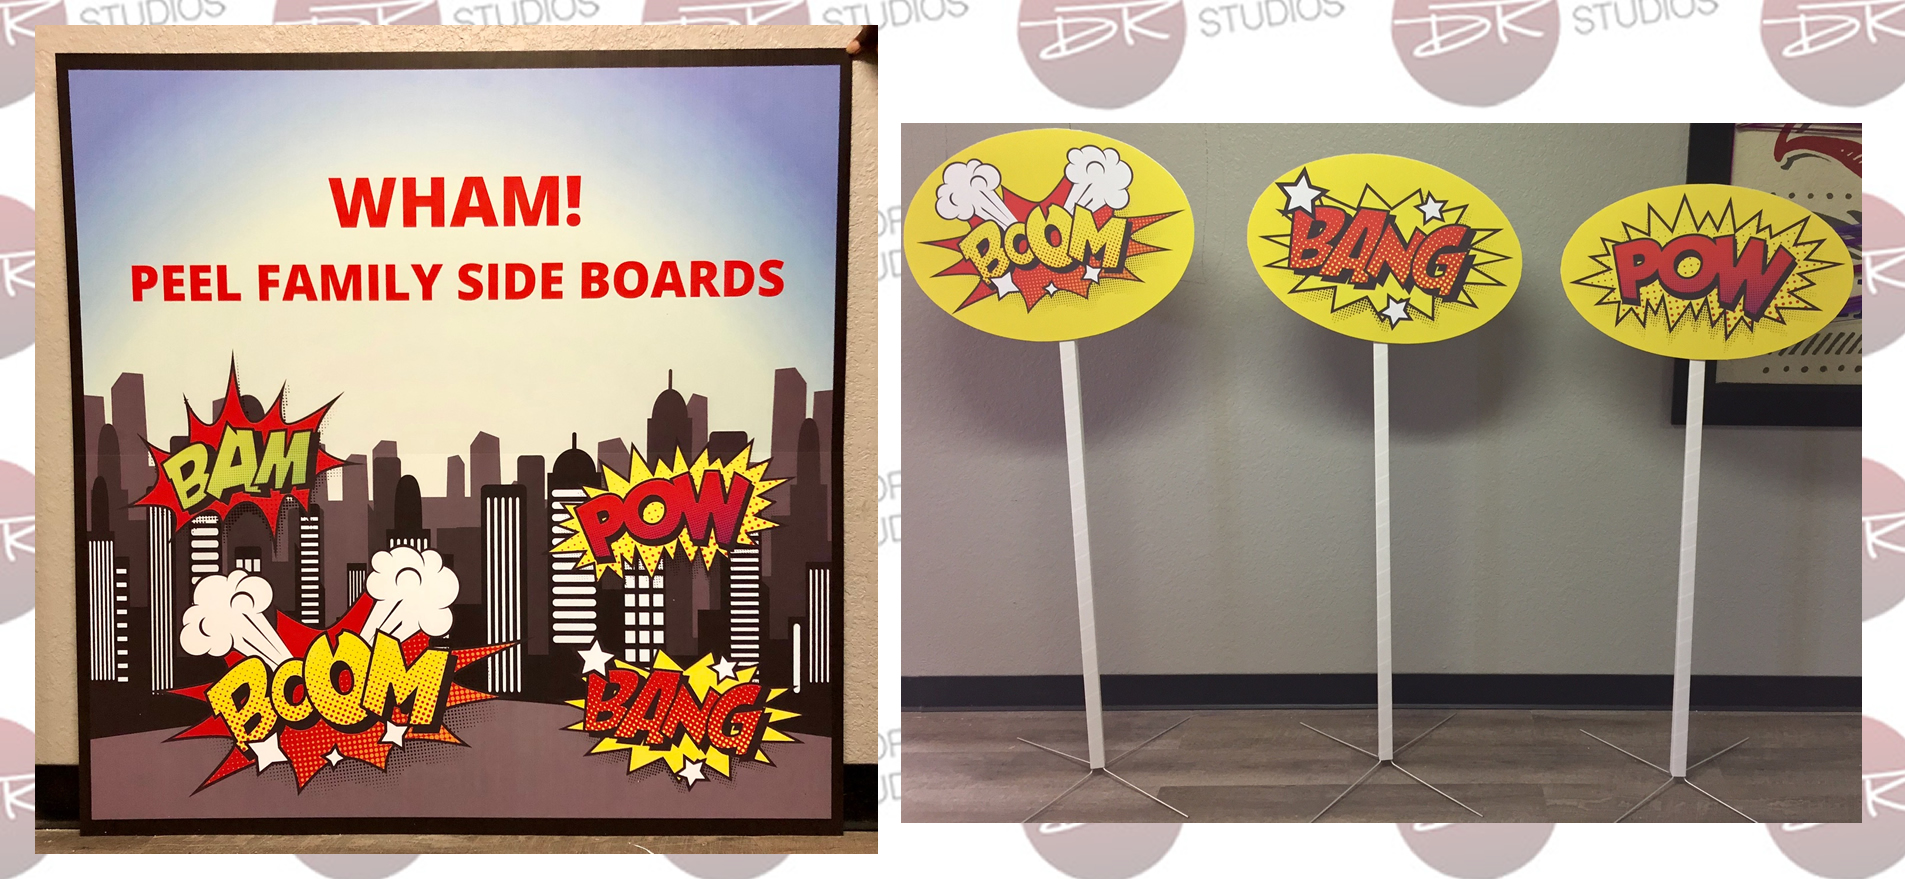 Cardboard Comic Superhero Backdrop Zoom Bang Pow Props for parties